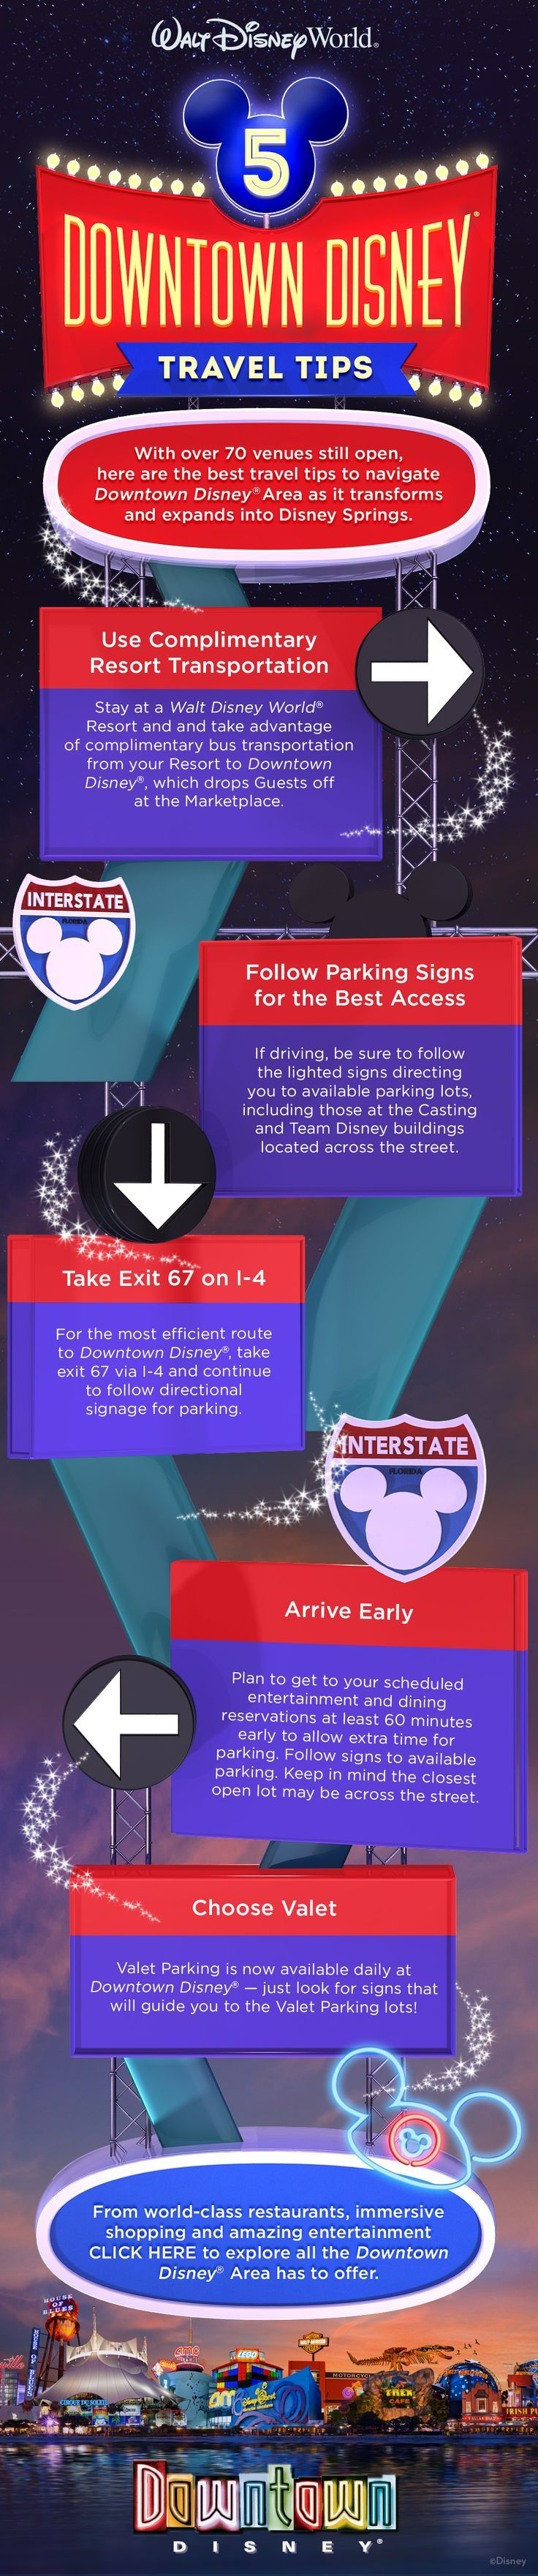 Downtown Disney Travel Tips from Walt Disney World! | Downtown Disney | Disney Springs |  Disney Tips and Tricks | Disney Tips | Disney World Tips | Disney World Tips & Tricks | Disney World Planning | Disney World Planning Tips | Disney Travel Ideas | Disney Travel Tips |